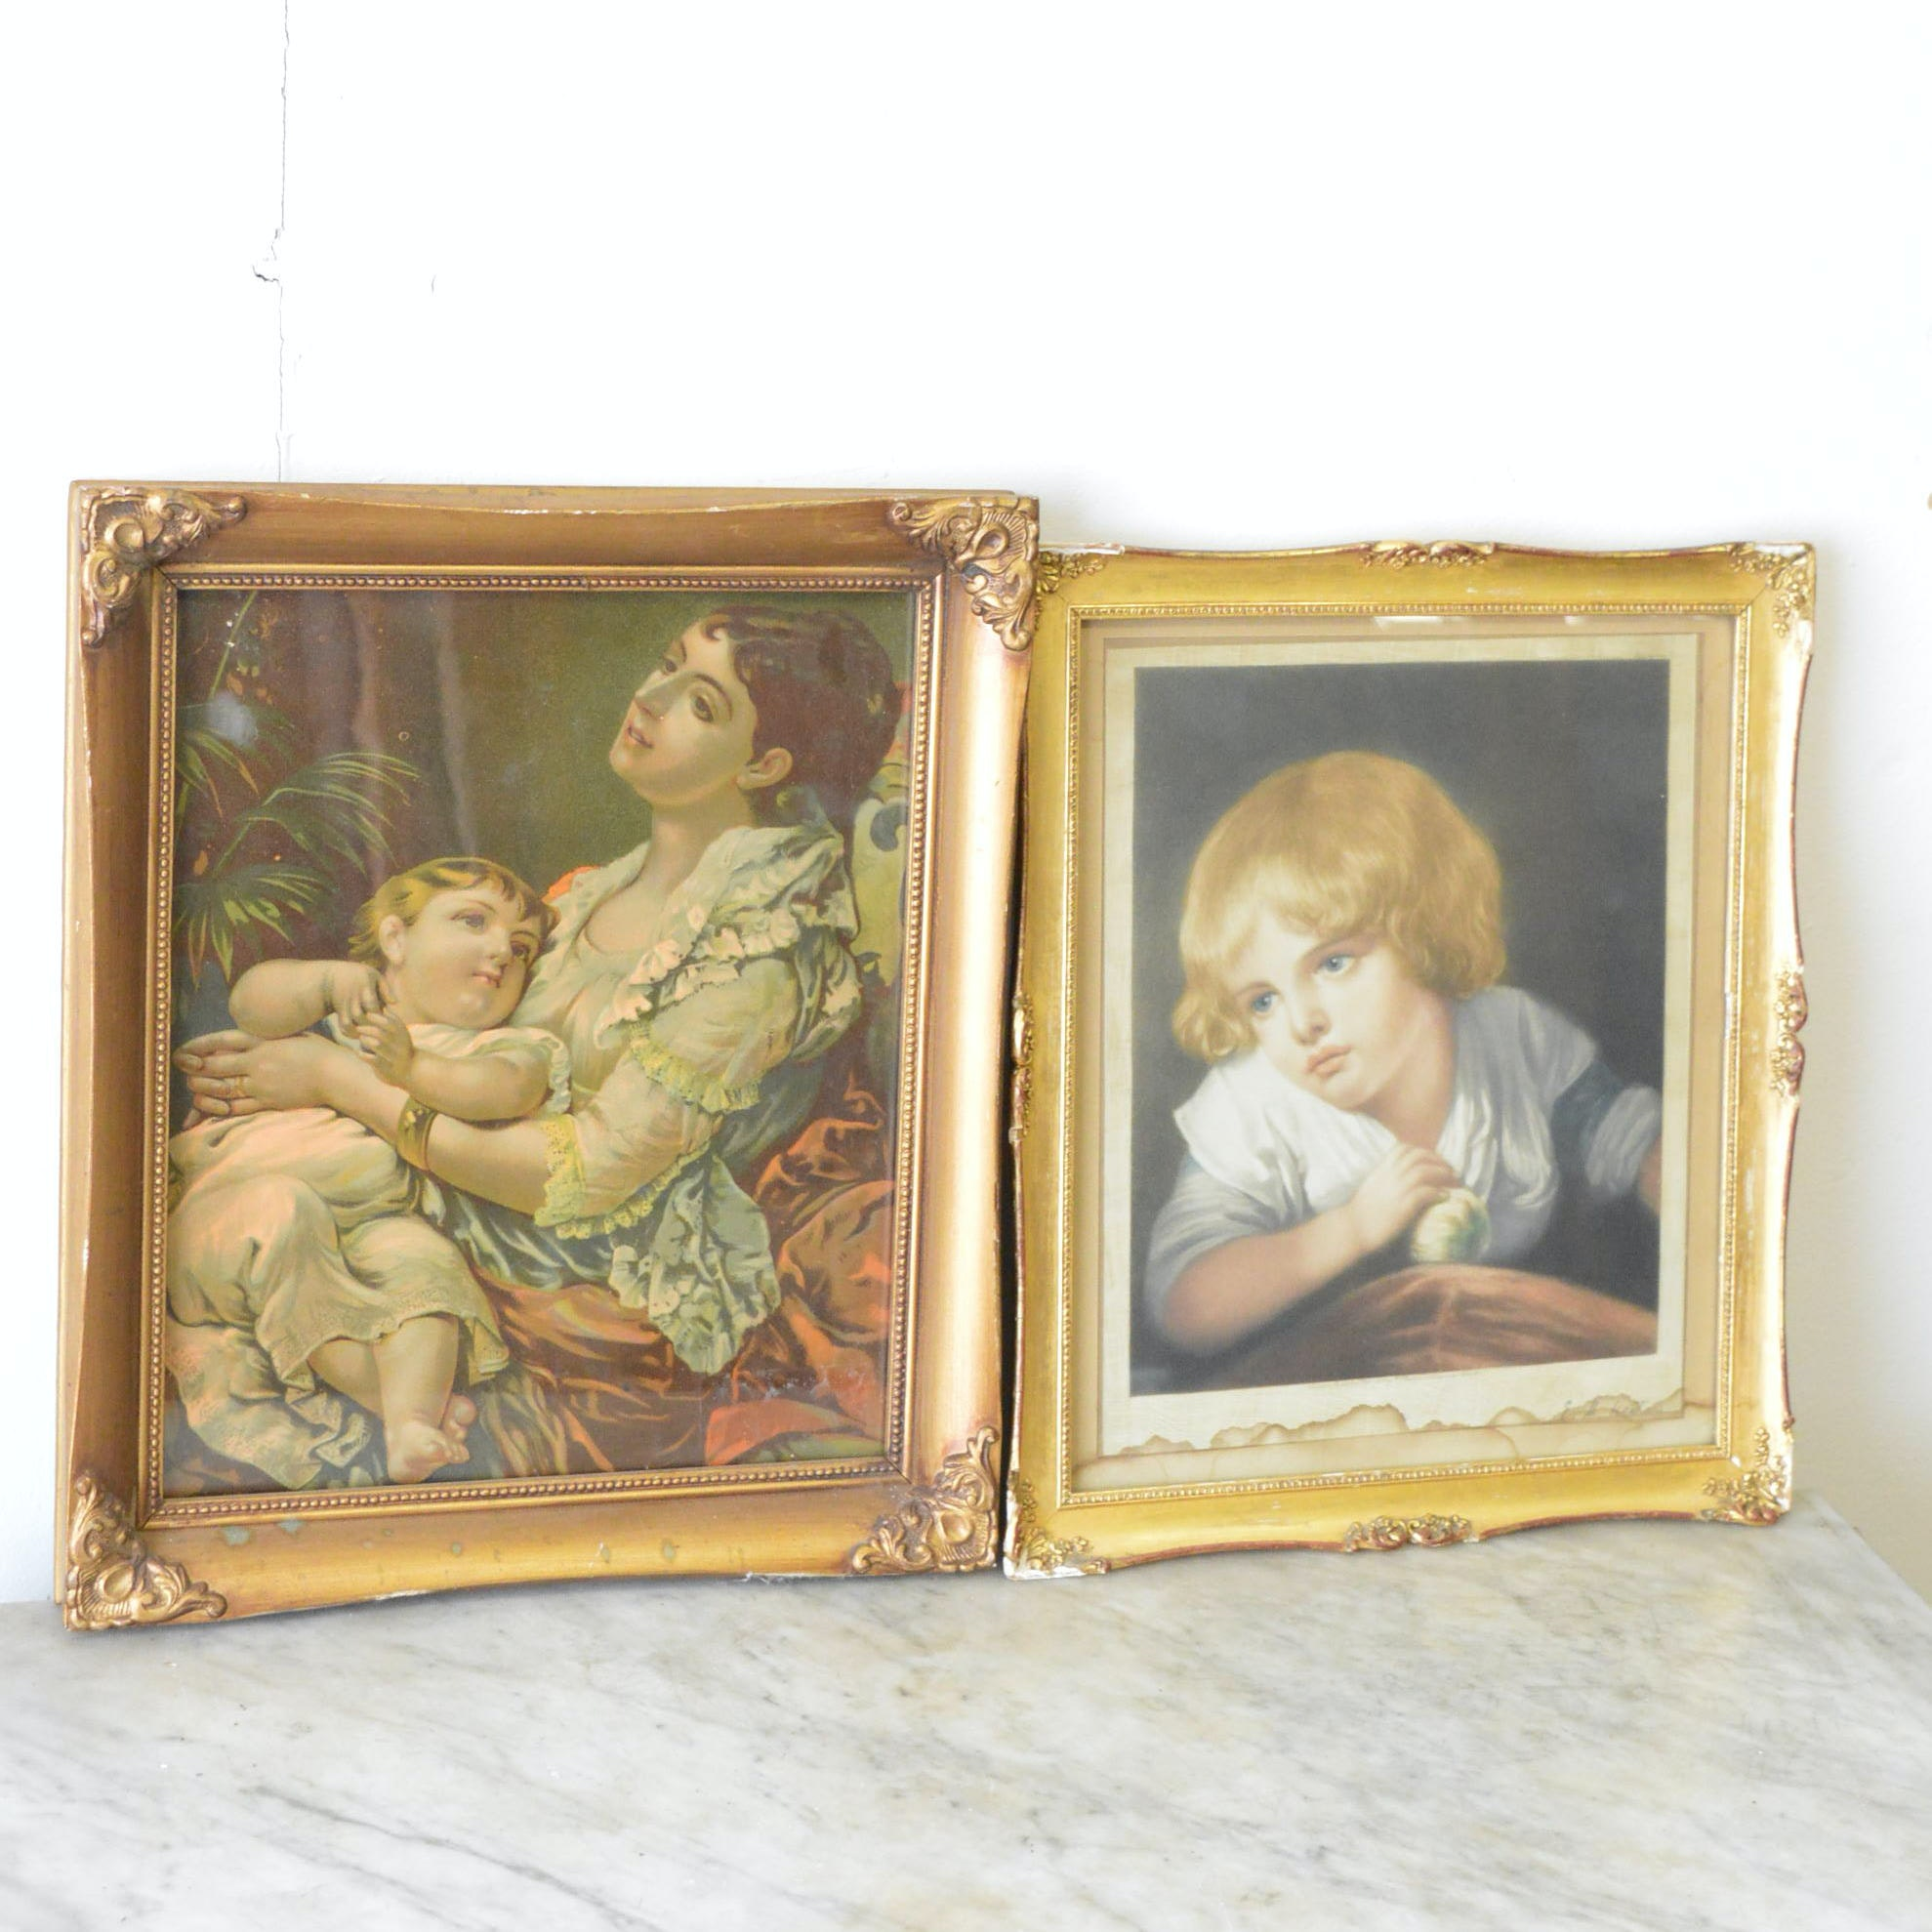 Chromolithographs of Children Featuring a Print by E.H. Hester